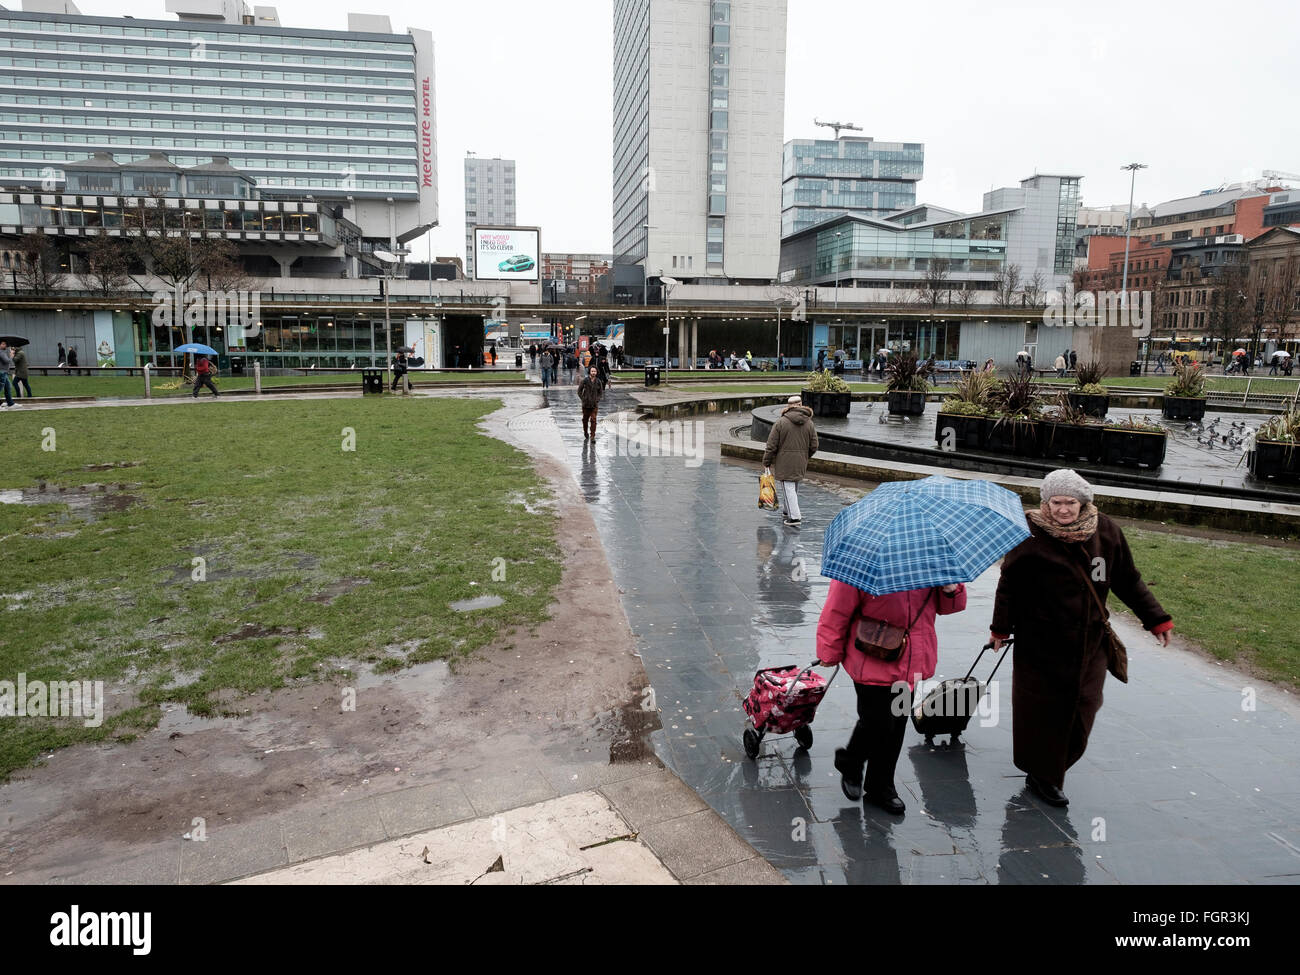 Manchester, UK - 17 February 2016: Raining on Piccadilly Gardens - Stock Image